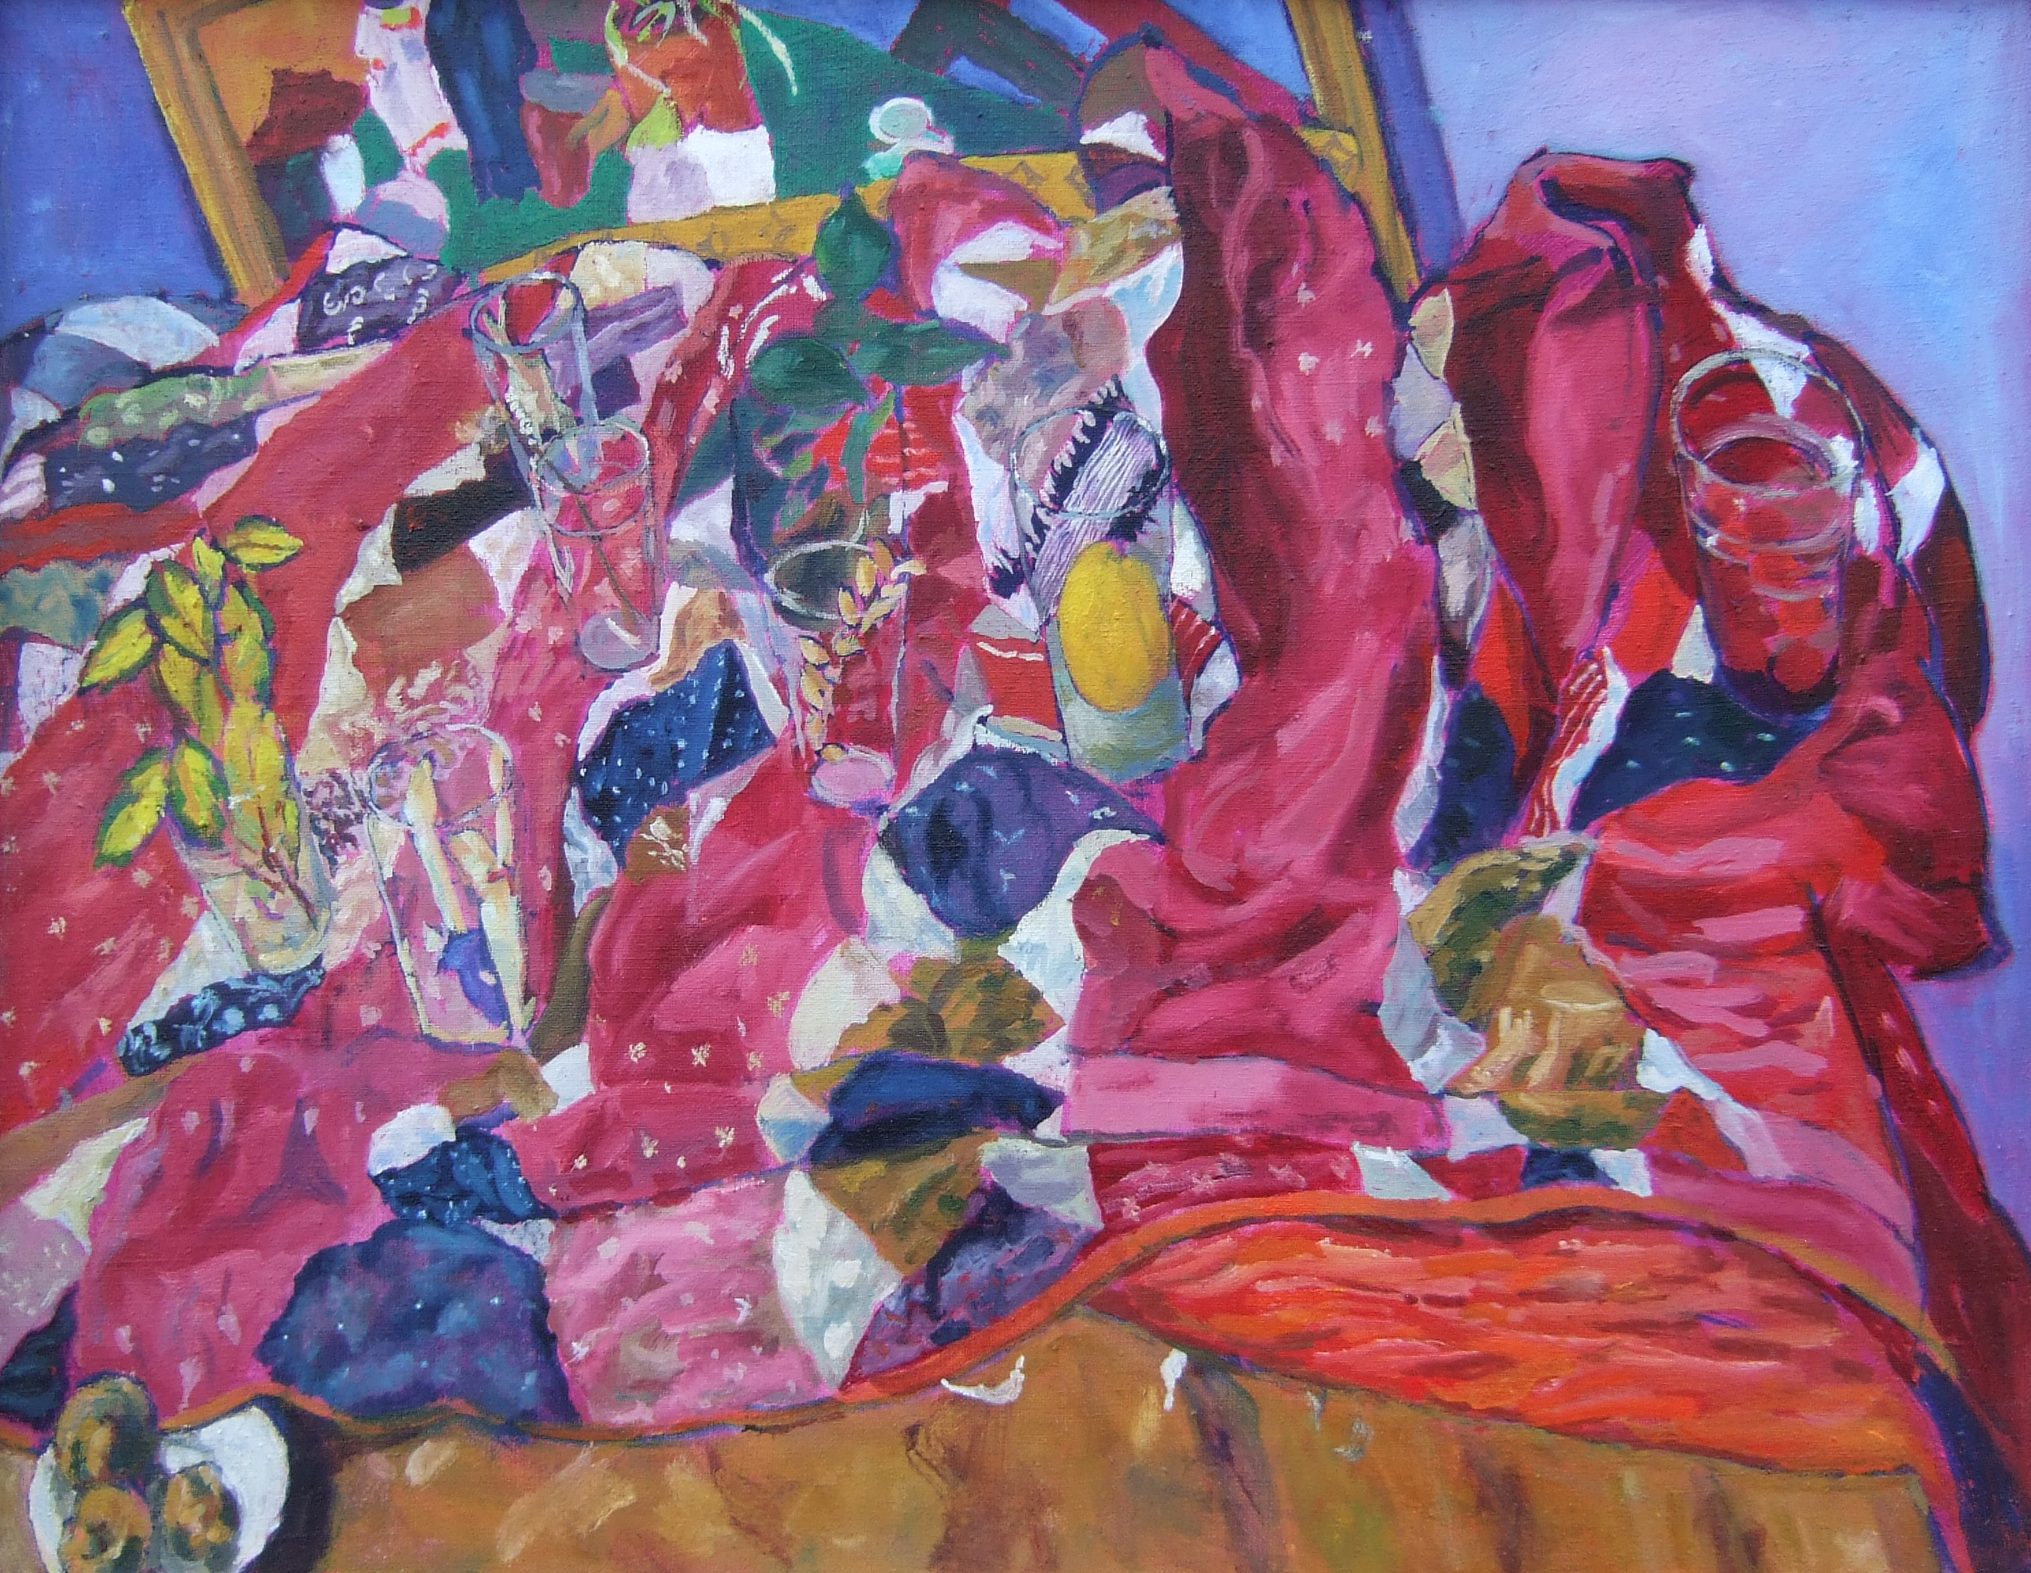 Still Life with Crumpled Tablecloth